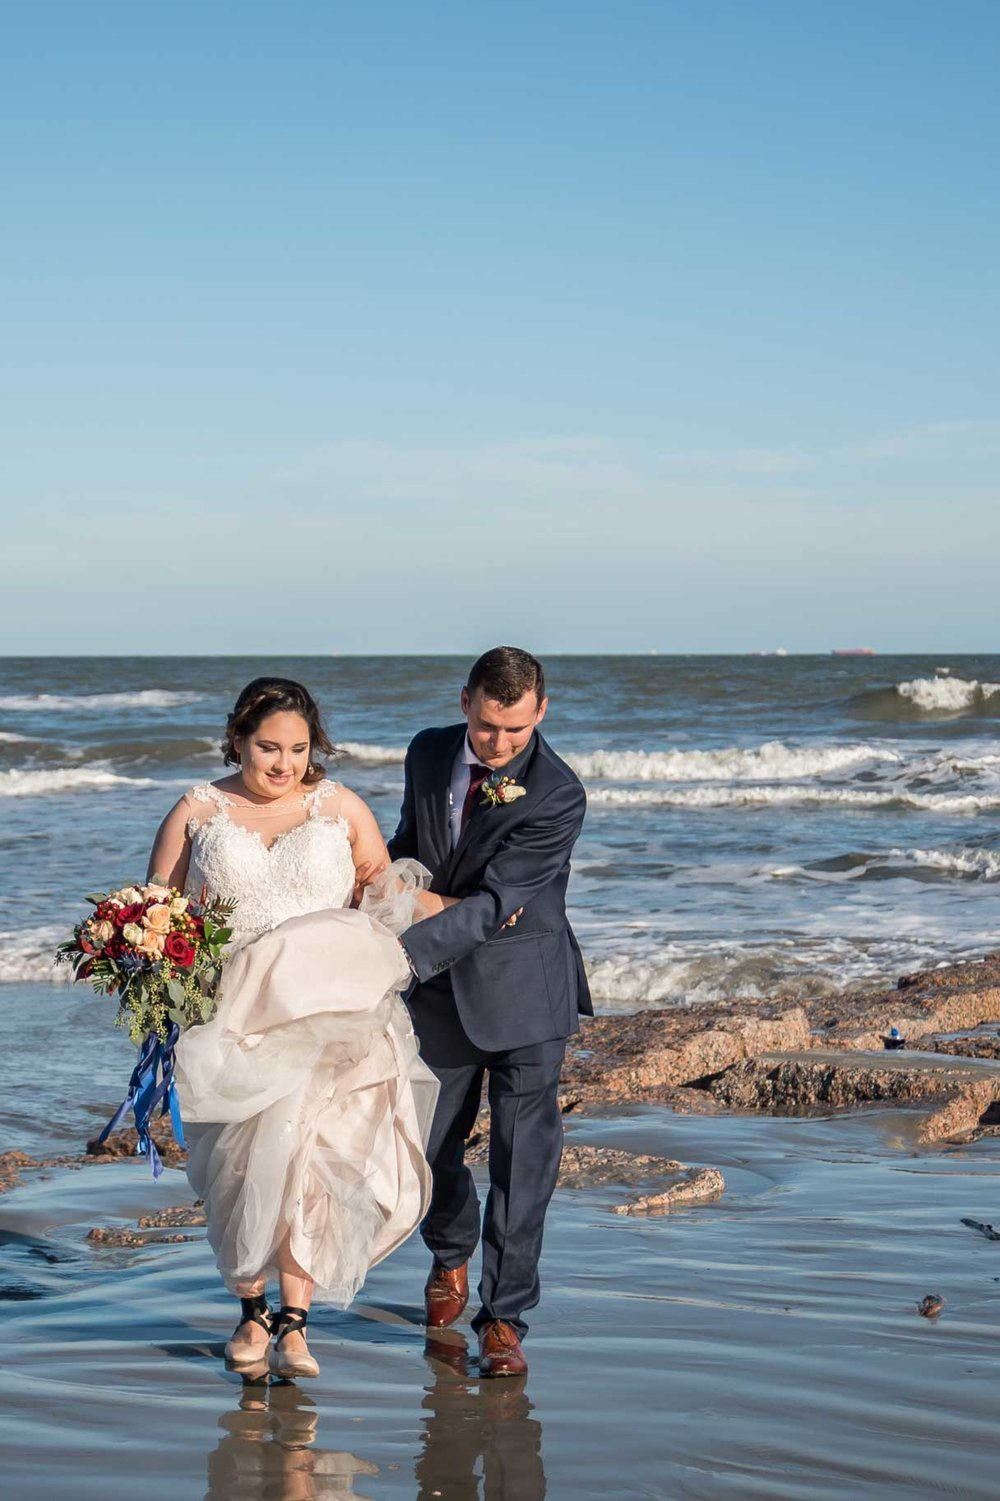 galveston-beach-wedding-ronnie-bliss-photo-121.jpg